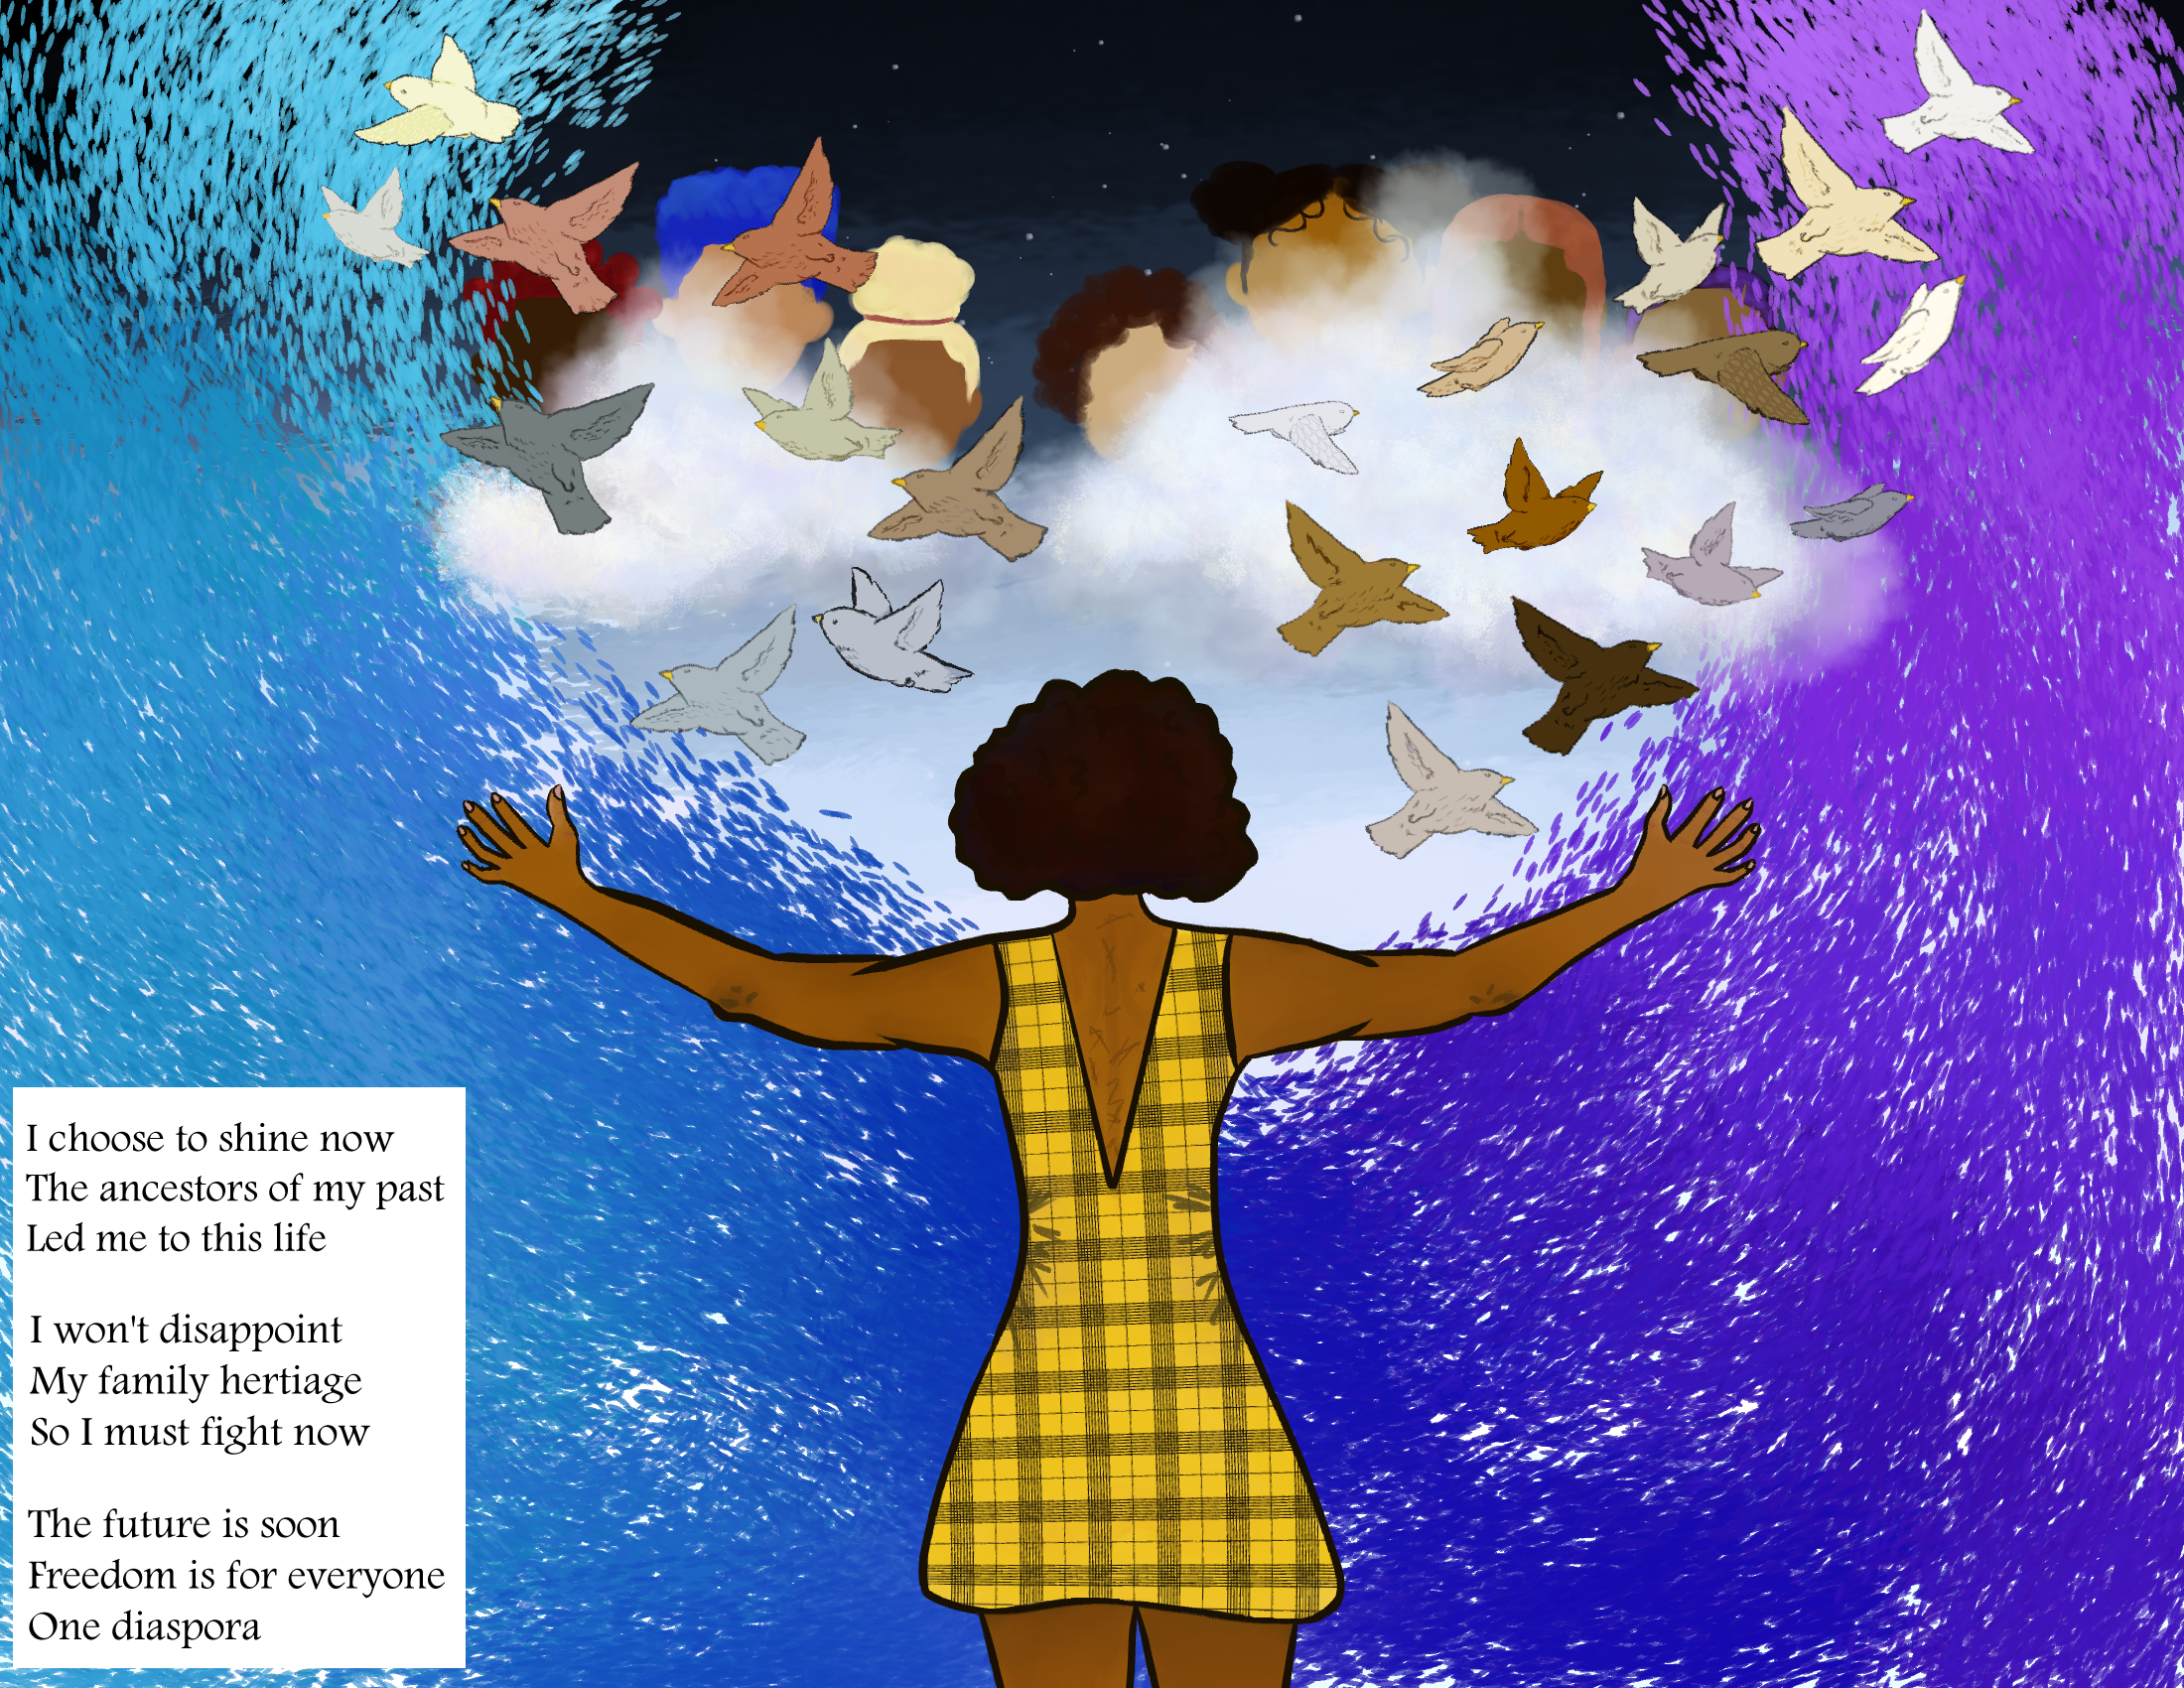 A black woman raises her arms towards a stary sky as birds fly from her arms.